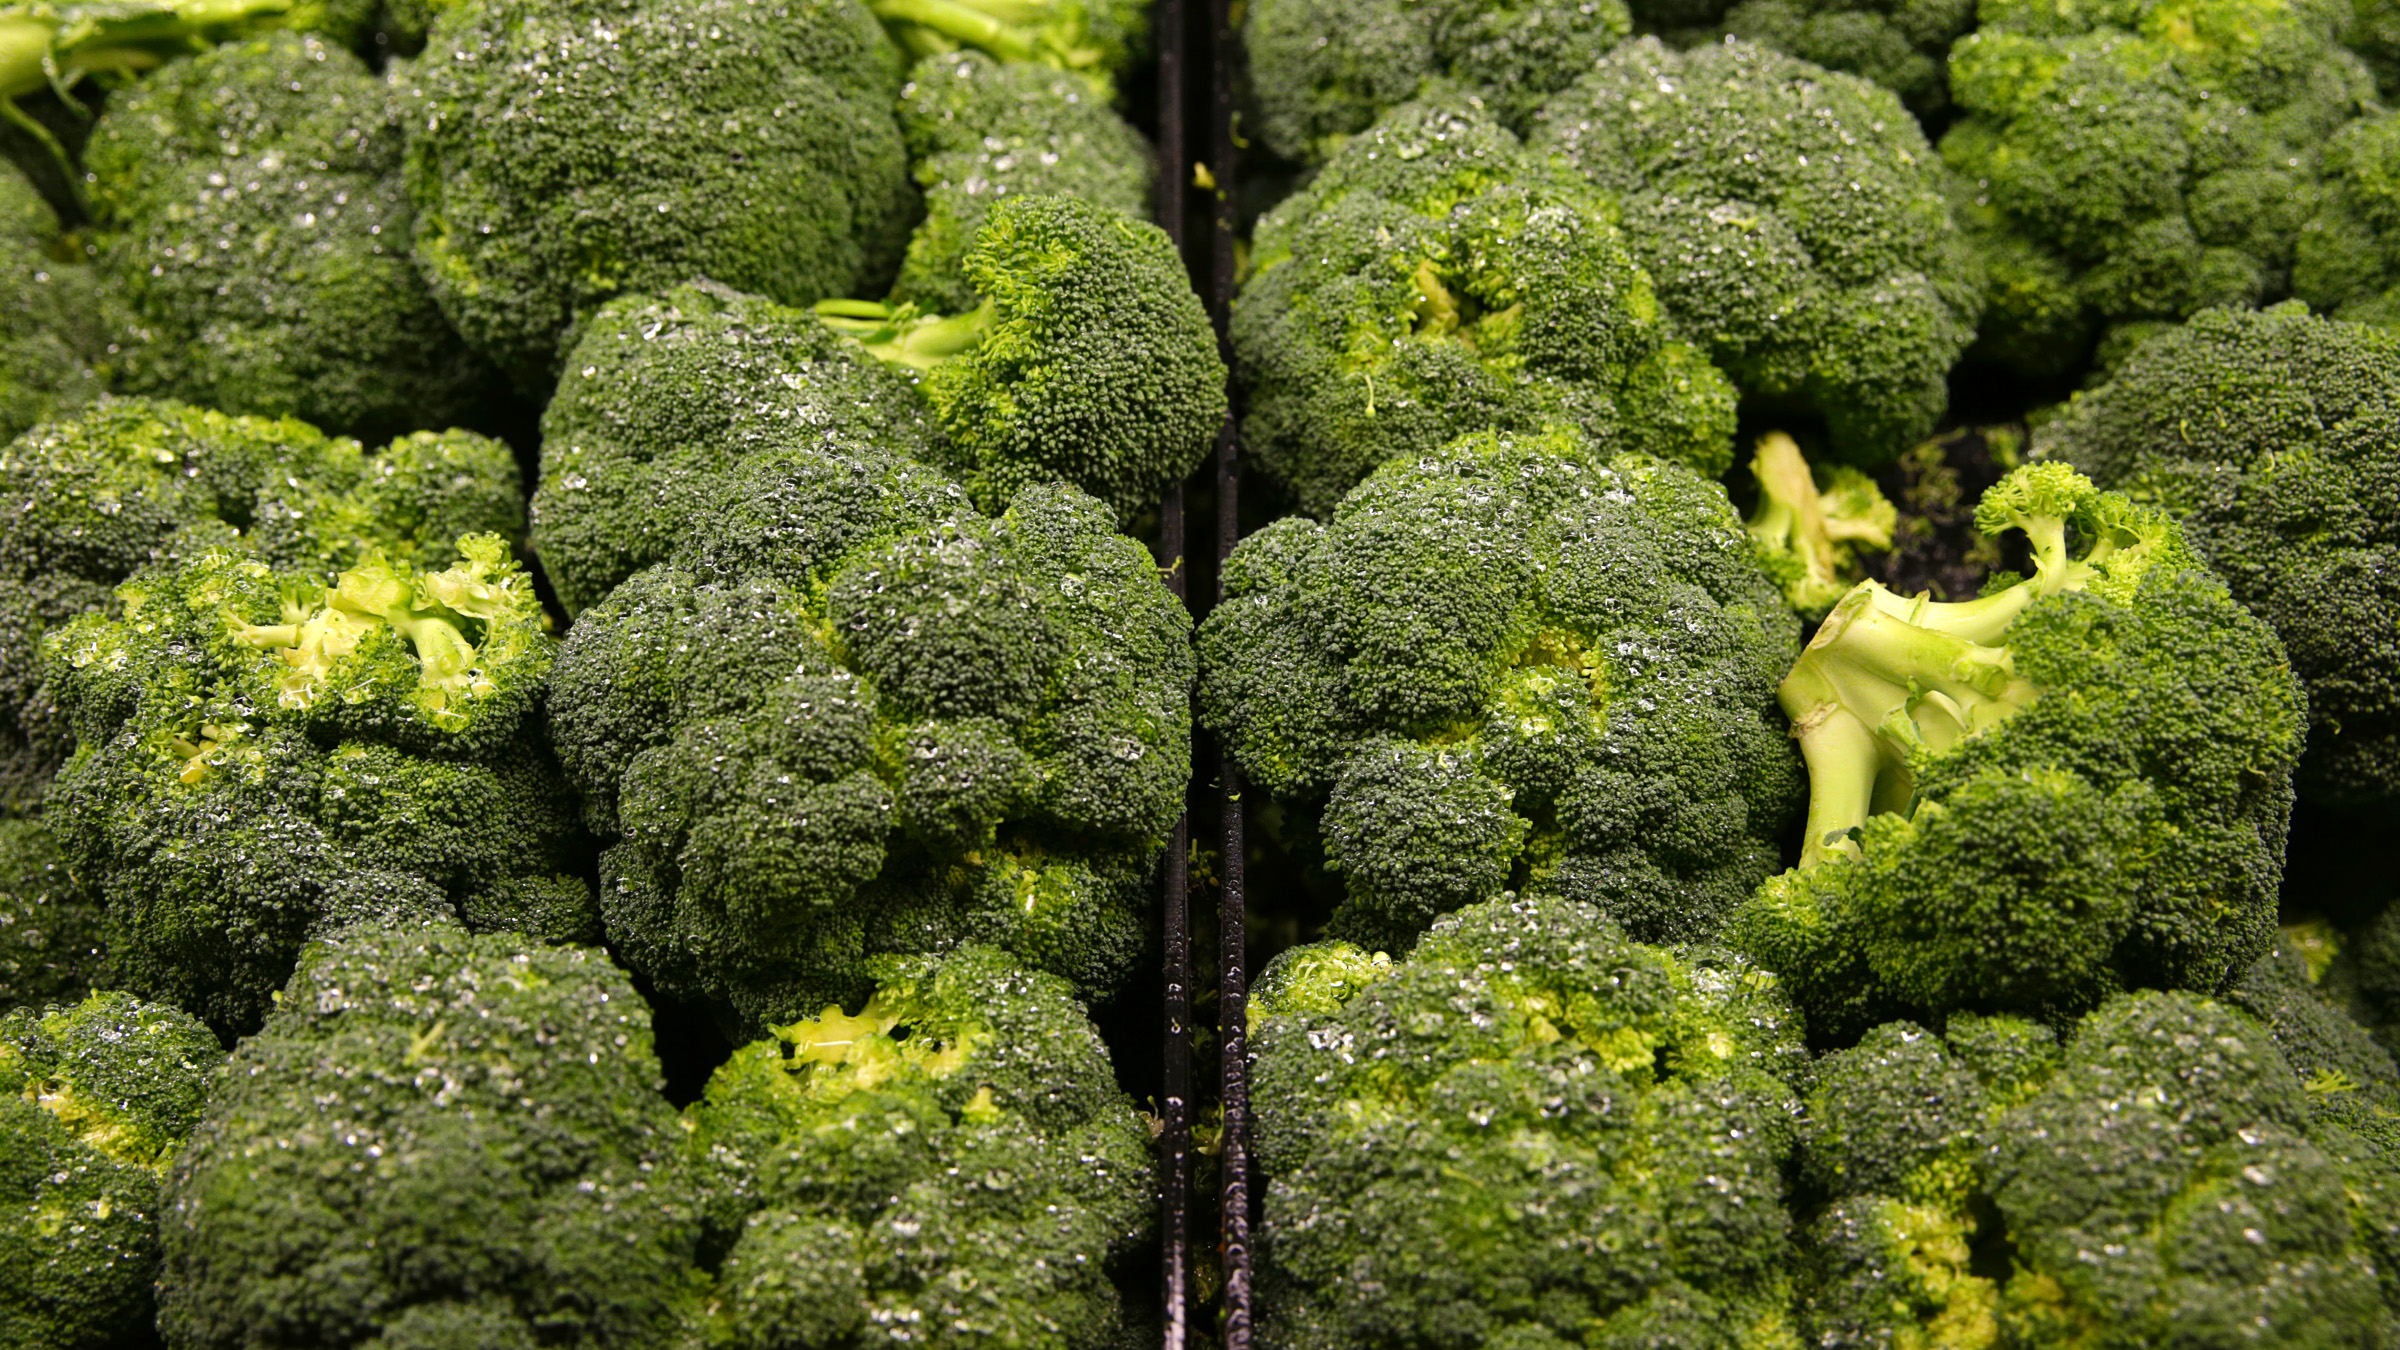 Broccoli is seen on display at the Safeway store in Wheaton, Maryland February 13, 2015.